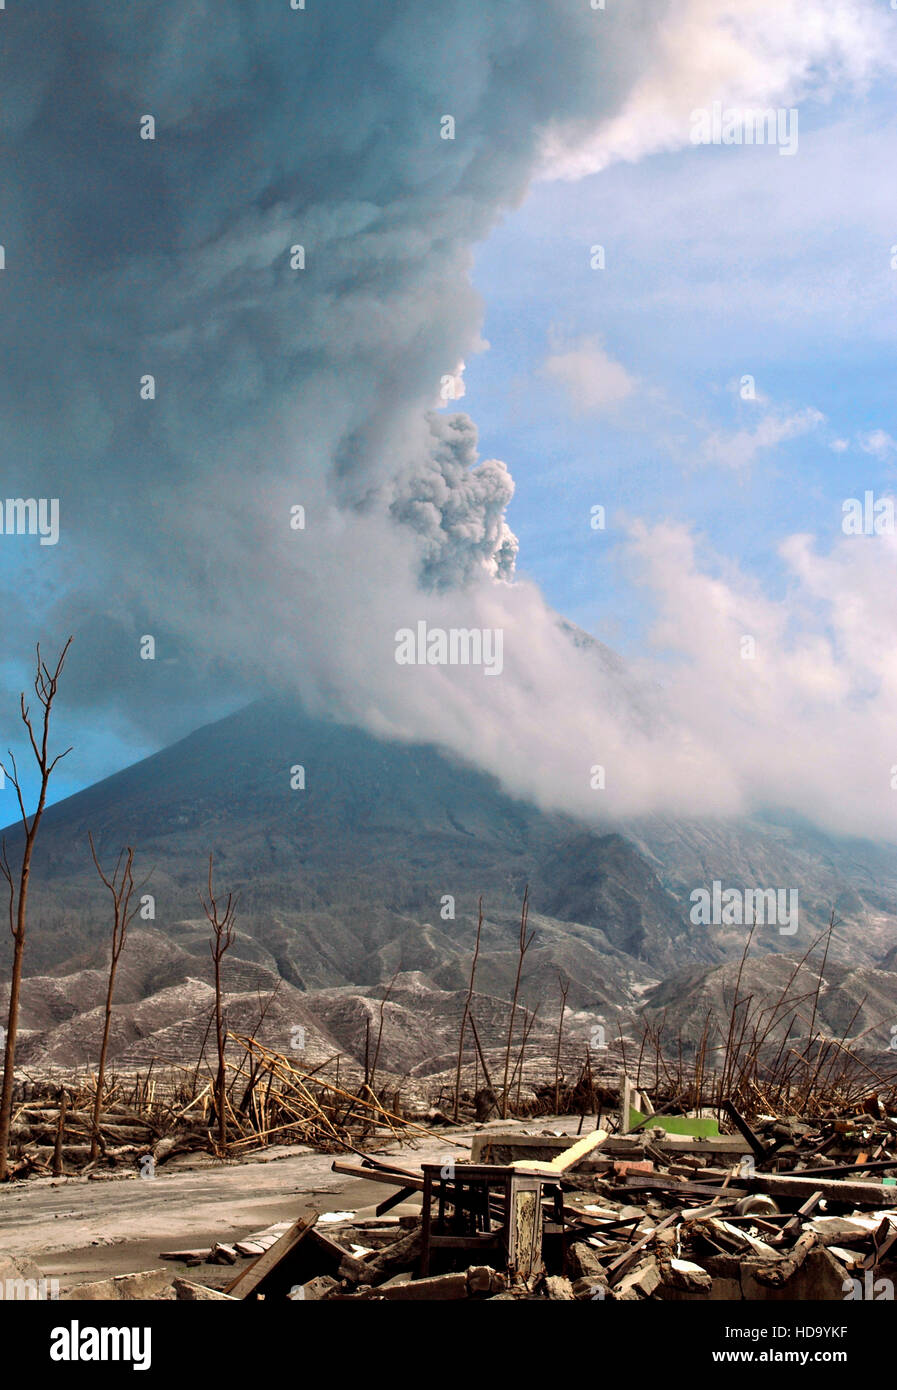 The 2010 eruptions of Mount Merapi began in late October 2010 when Mount Merapi in Central Java, Indonesia. - Stock Image